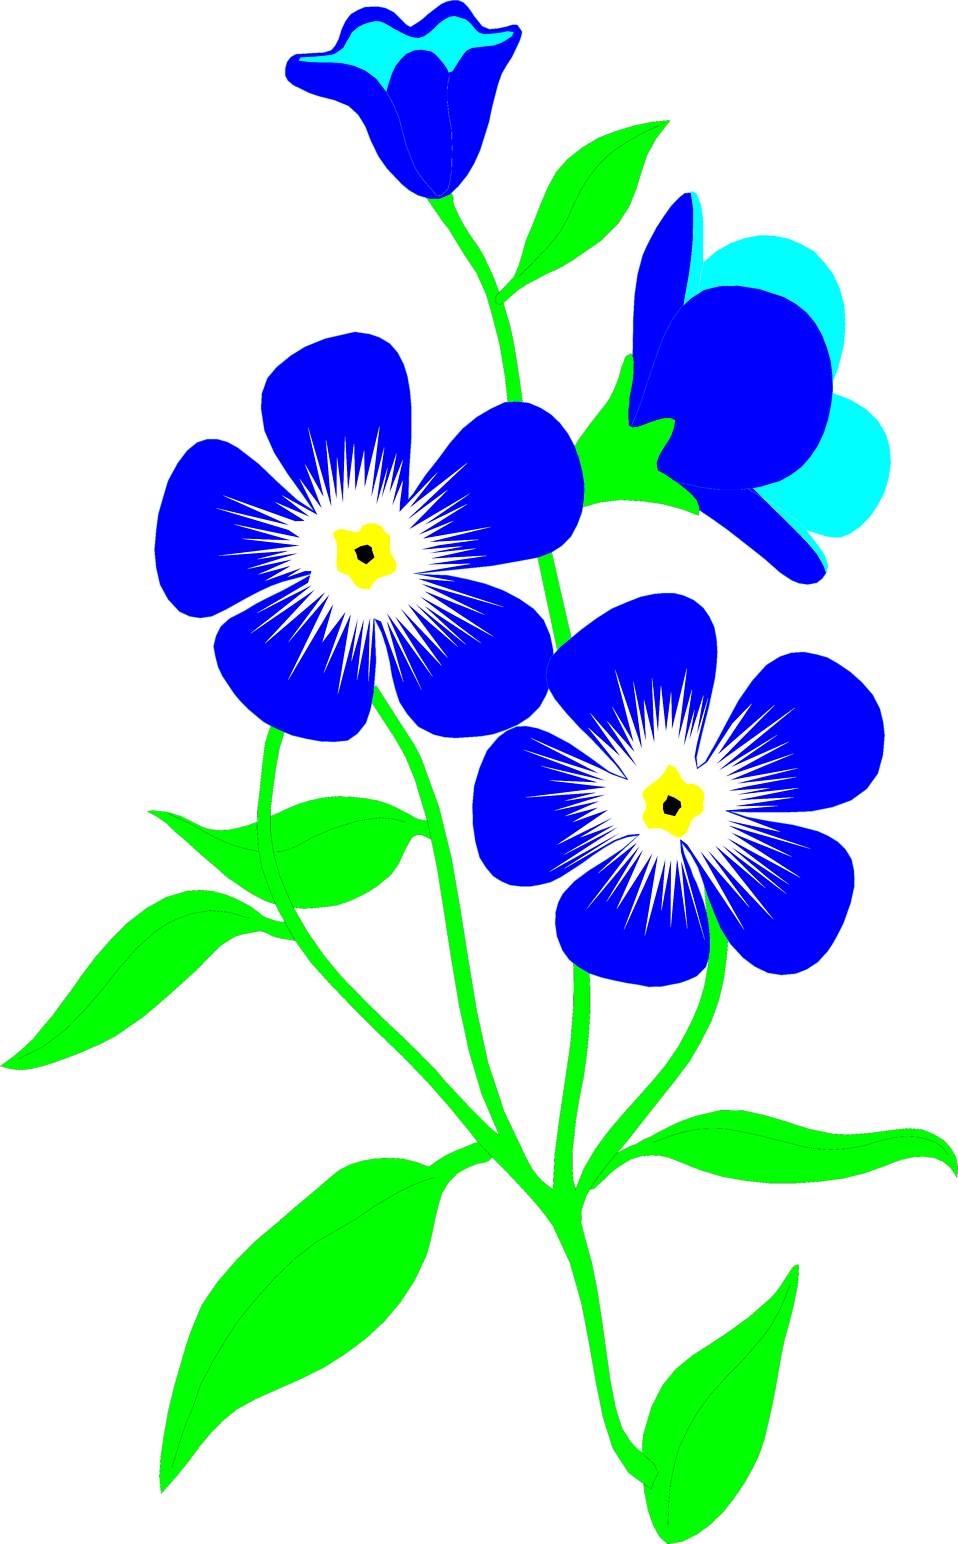 Flowers image free clipart black and white Flowers Blue | Free Stock Photo | Illustration of blue forget-me-not ... clipart black and white